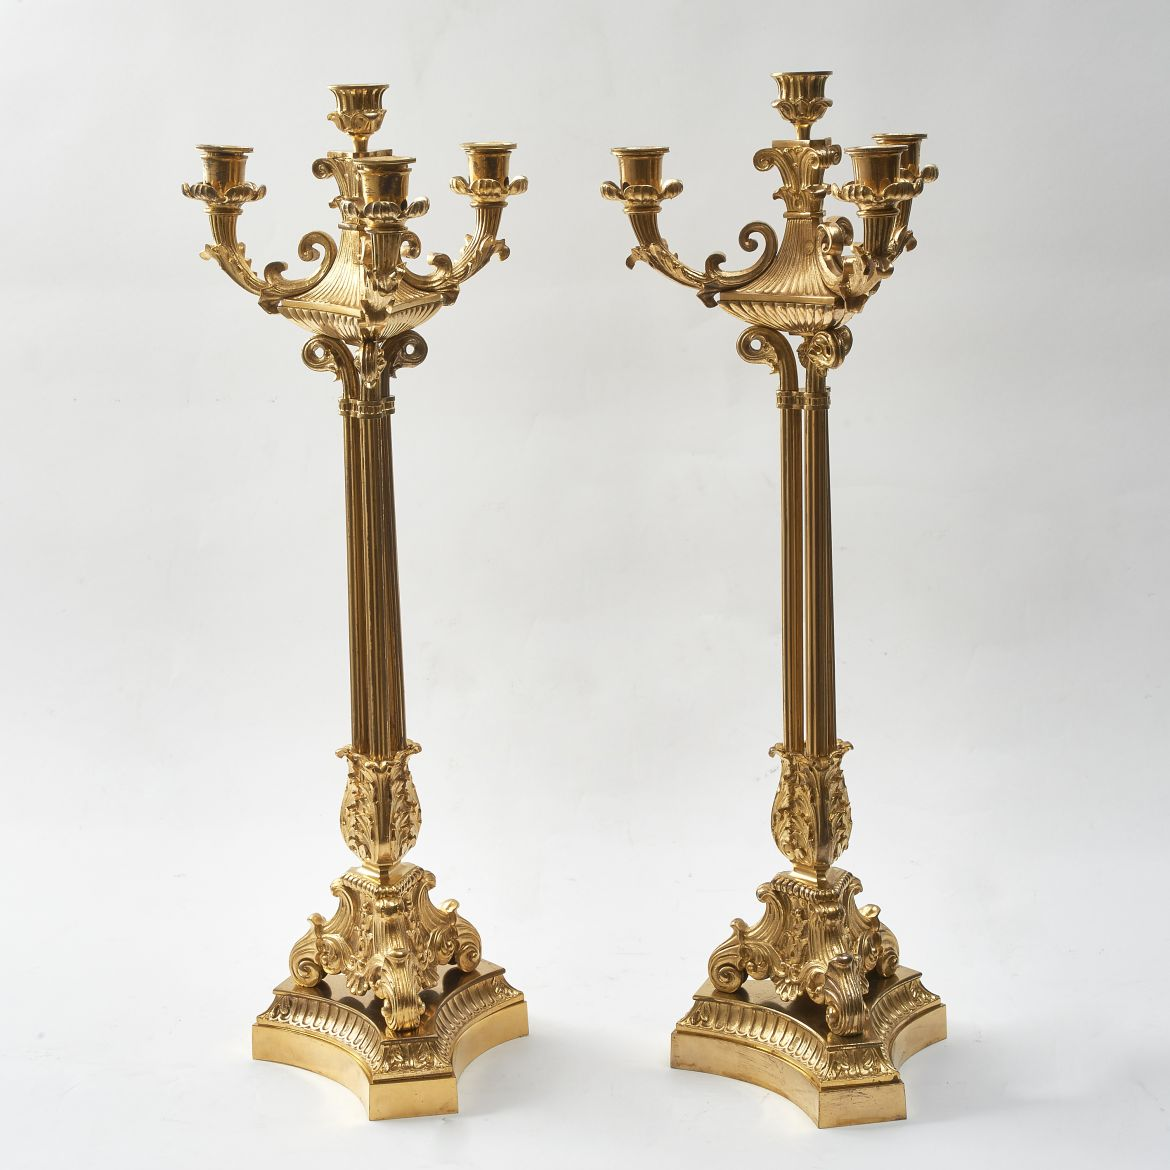 William IV Candelabra